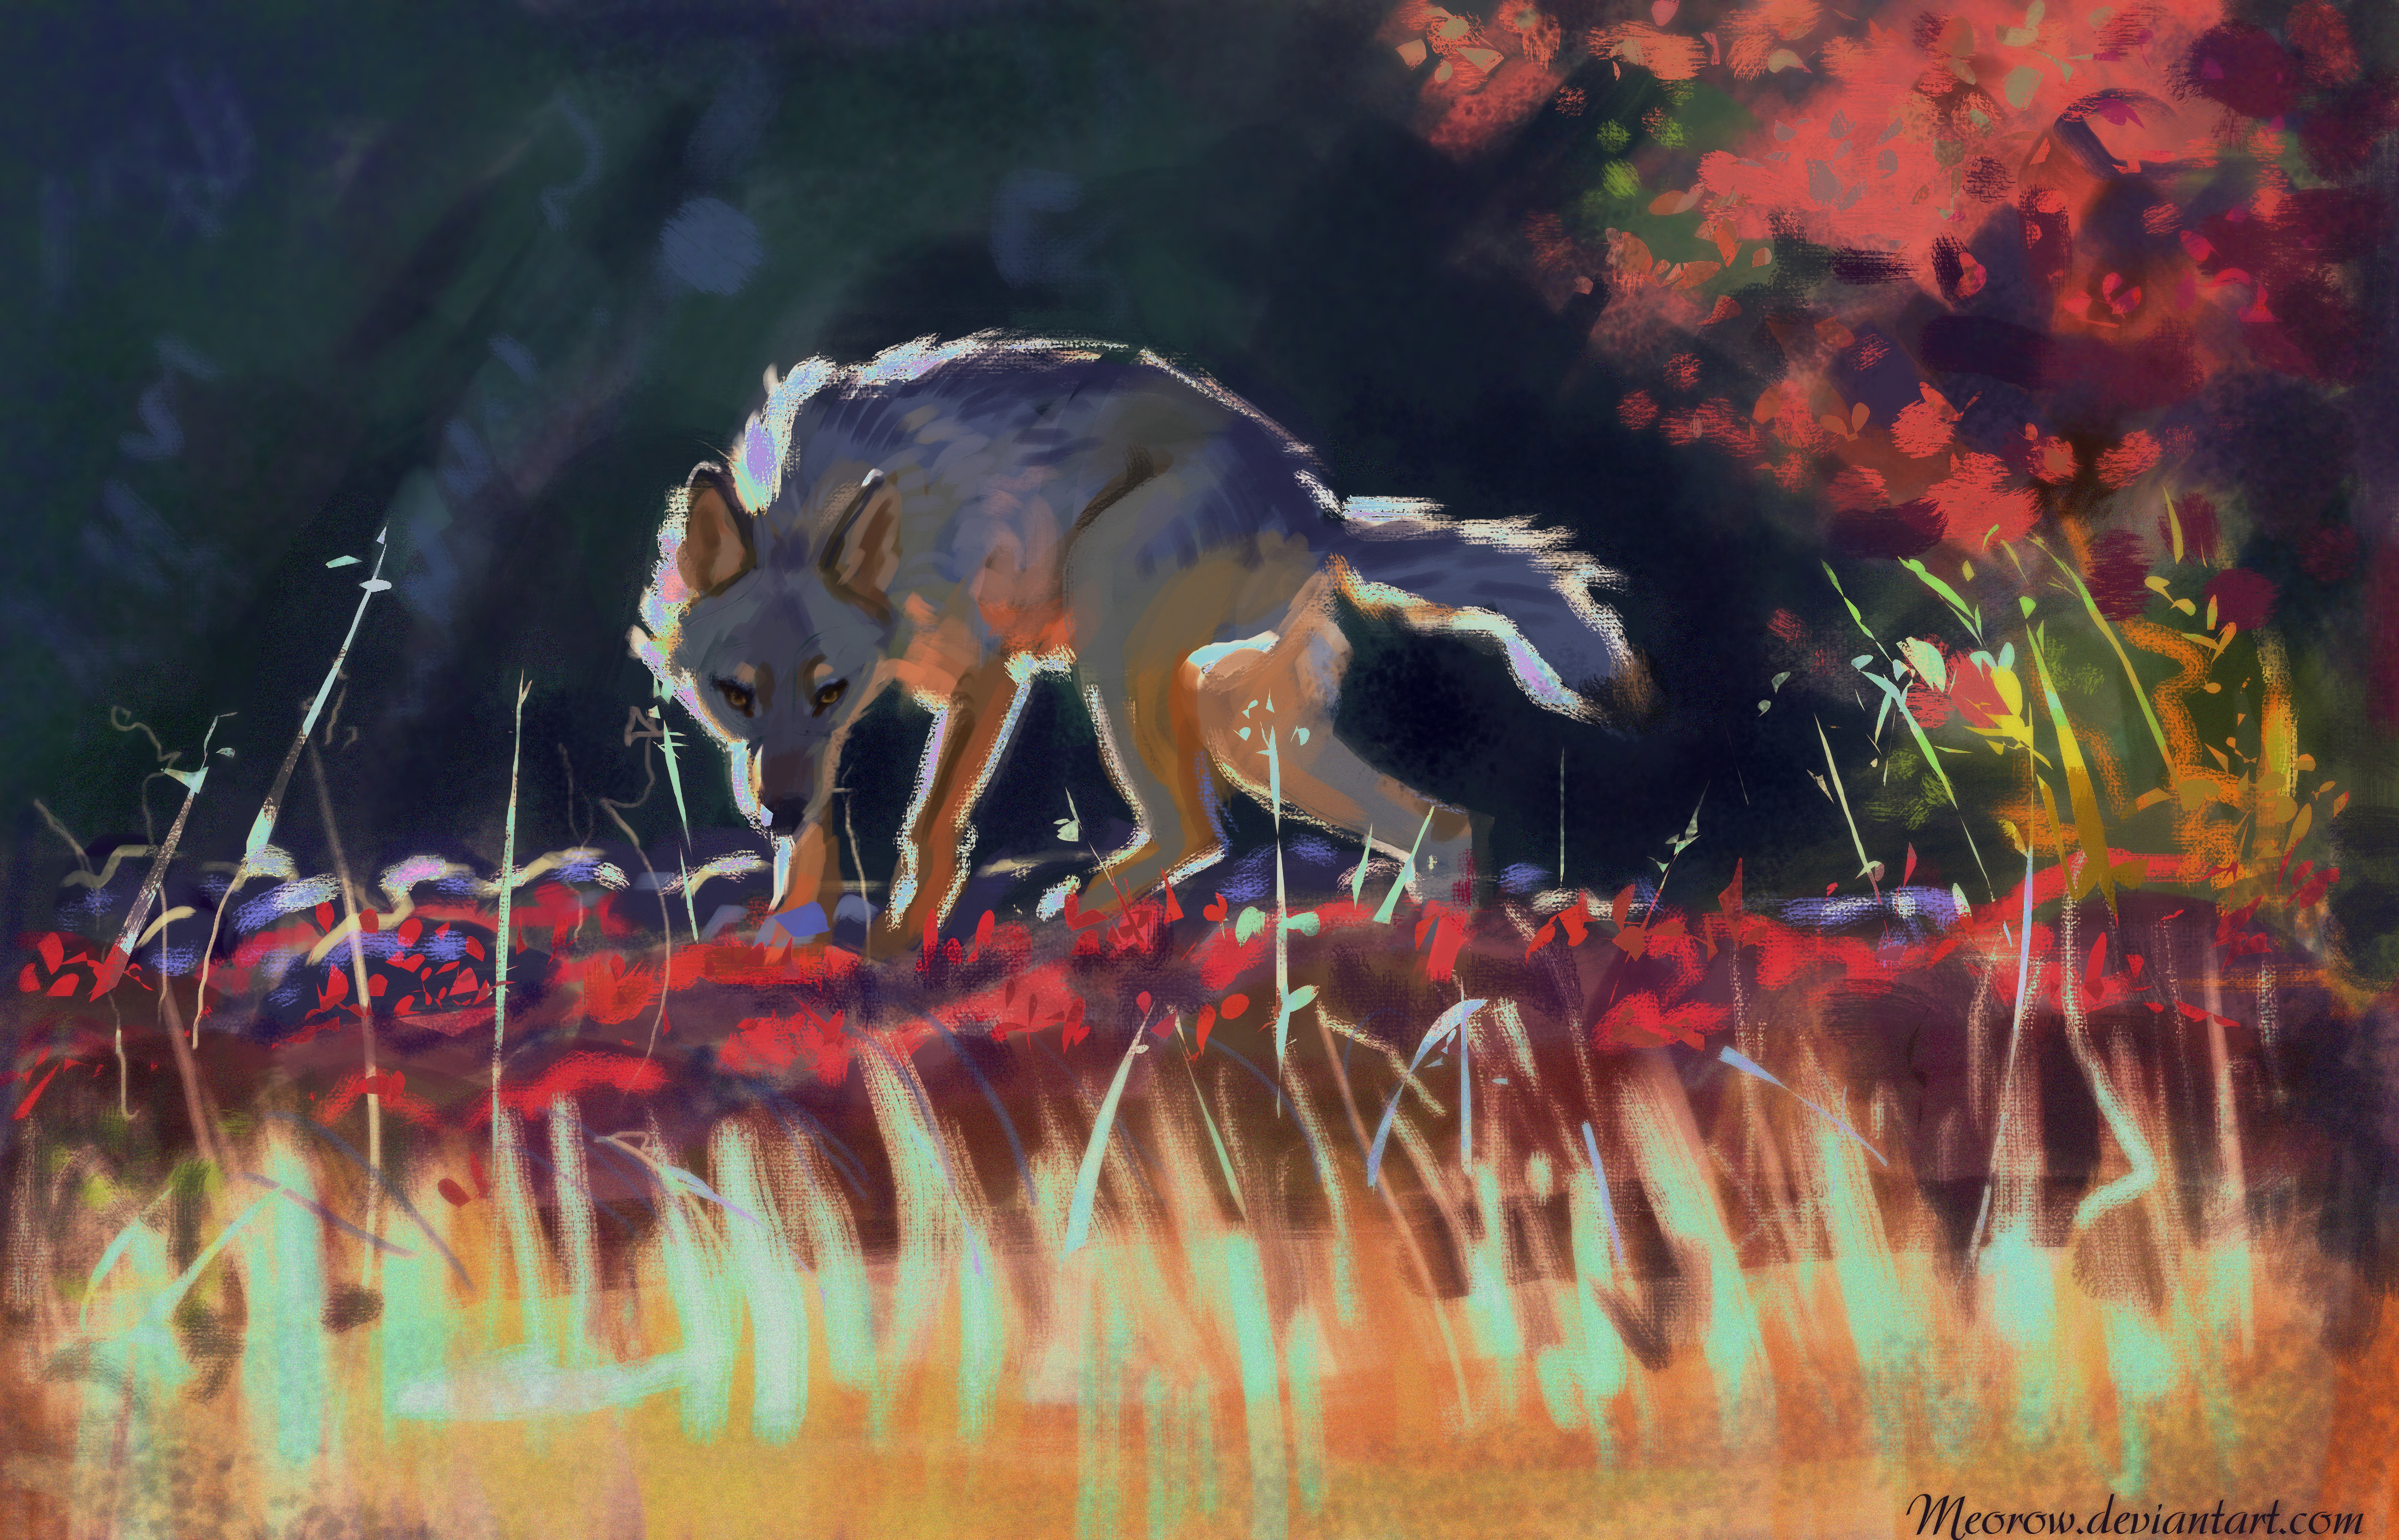 55935 download wallpaper Art, Grass, Predator, Wolf, Wildlife screensavers and pictures for free